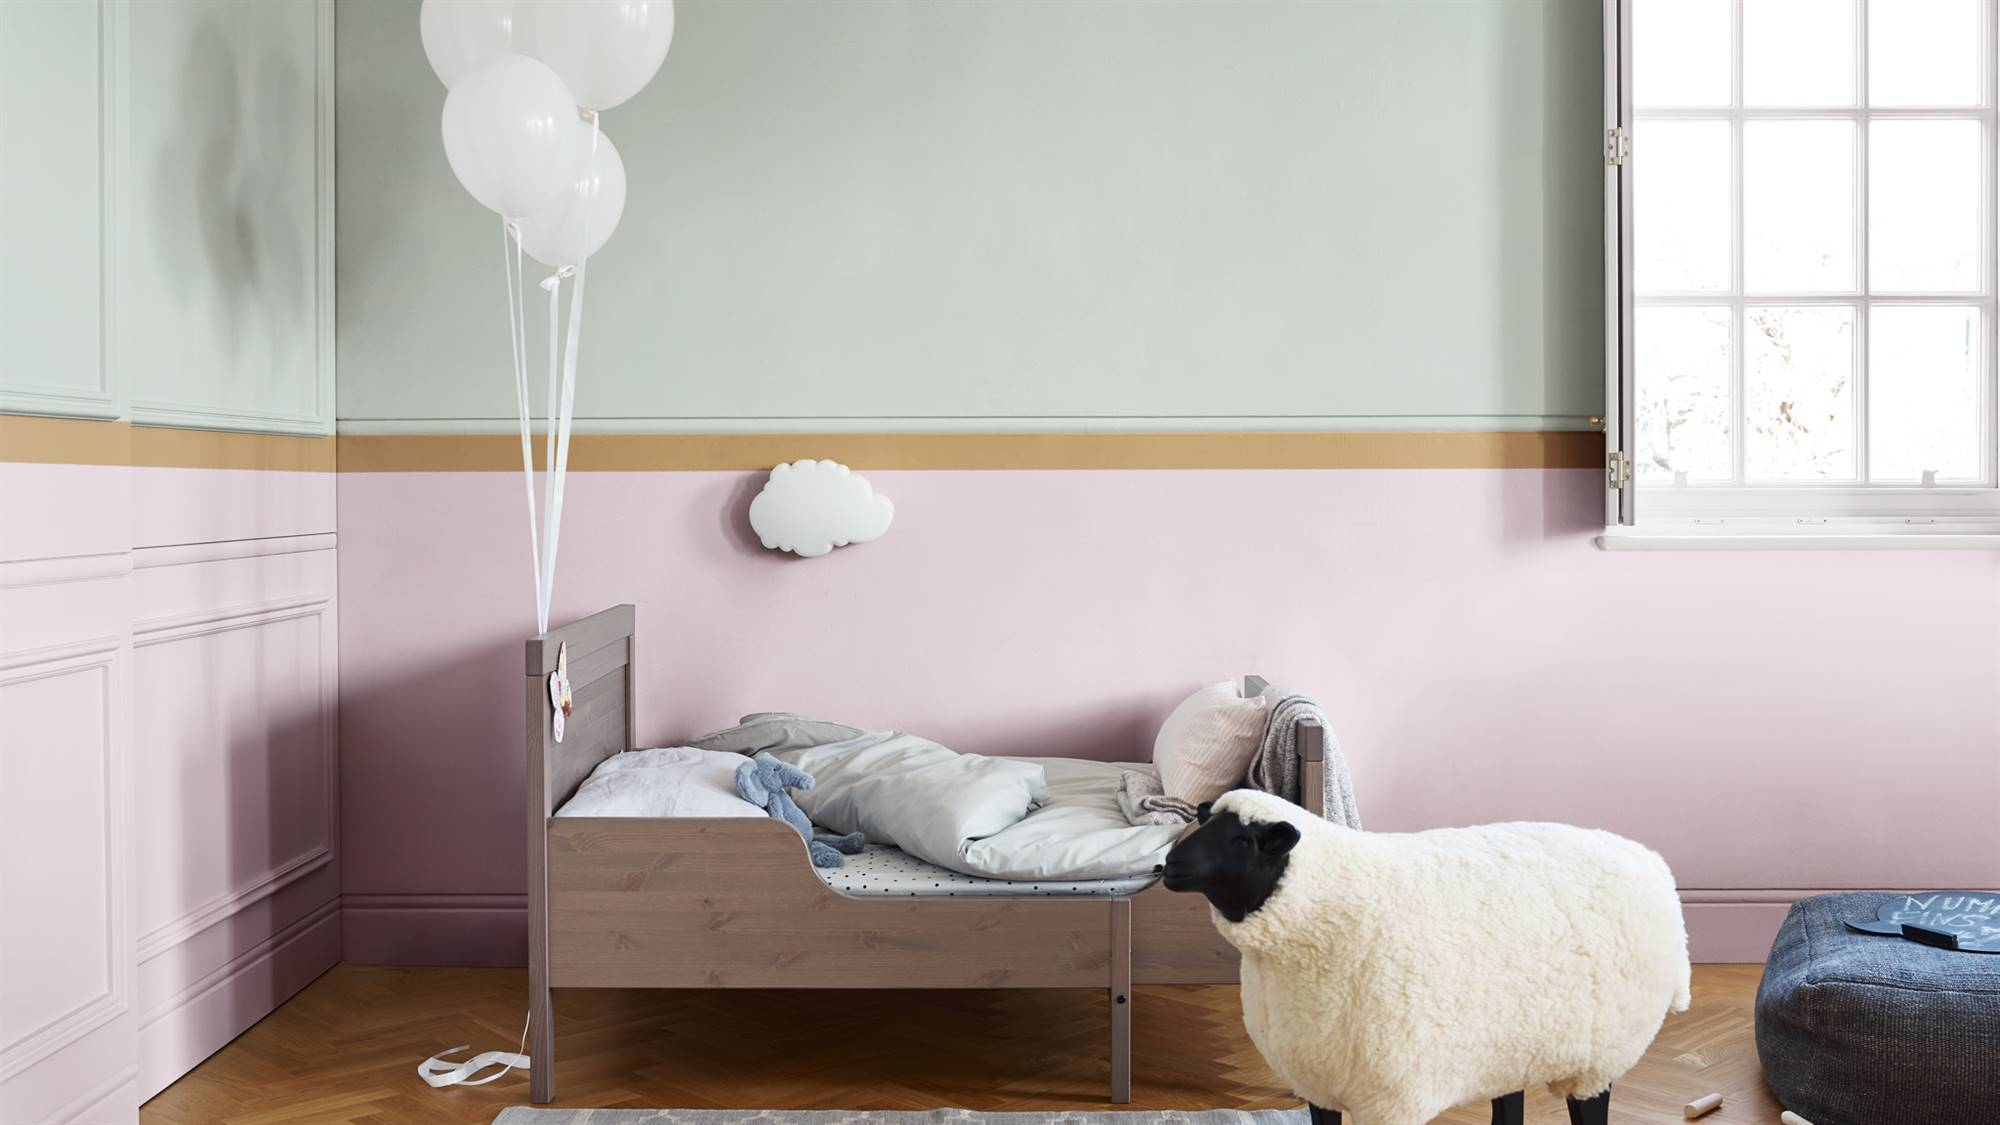 Dulux-Colour-Futures-Colour-of-the-Year-2019-A-place-to-dream-Kidsroom-Inspiration-Global-07 (Sueña 3). Sueña 3, un rosa suave y sosegado